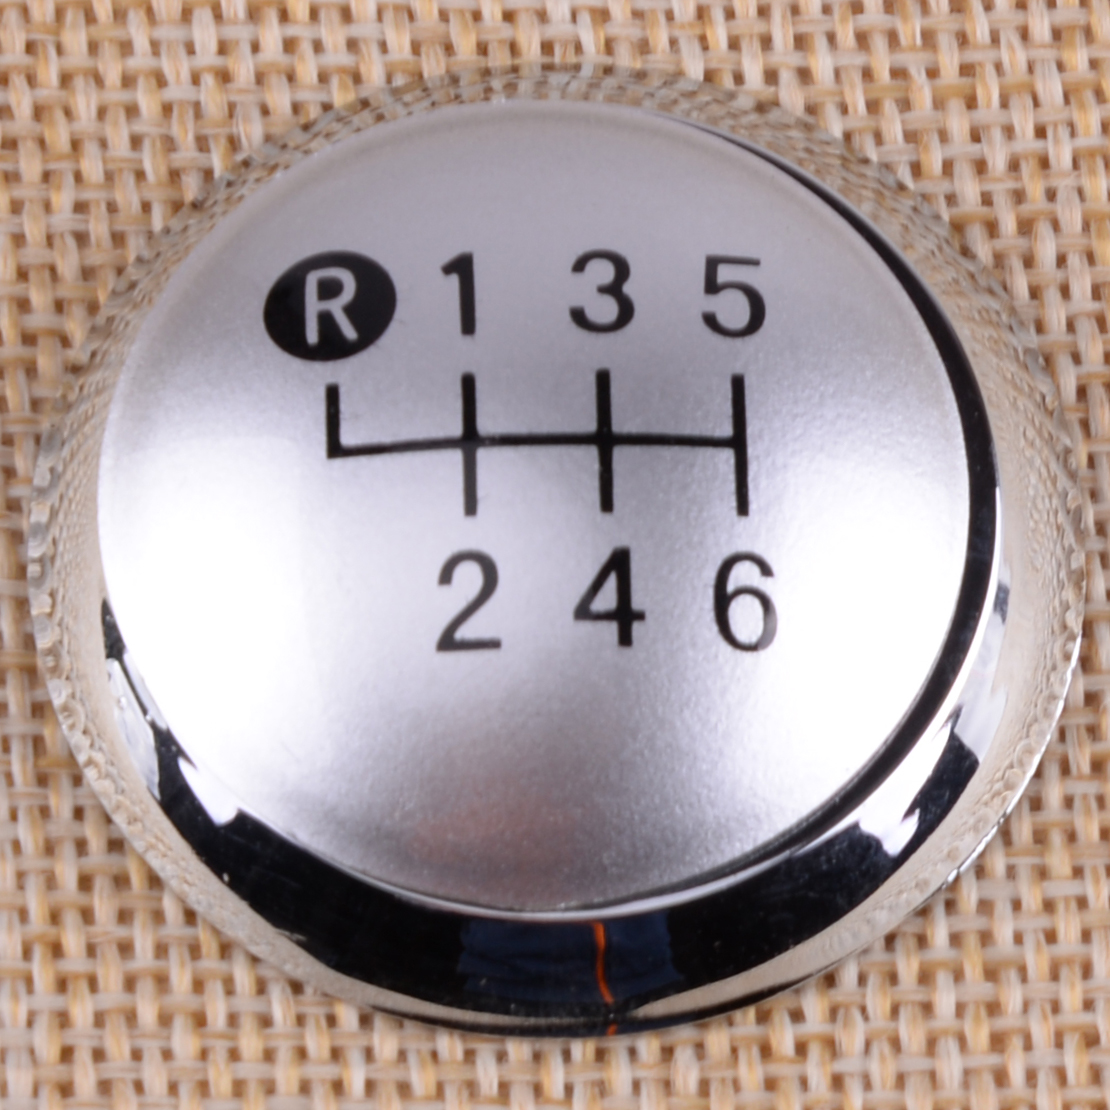 CITALL 6 Speed Chrome Car Gear Shift Stick Knob Cap Cover Decoration Fit for <font><b>Toyota</b></font> <font><b>Auris</b></font> 2007 <font><b>2008</b></font> 2009 Accessories image